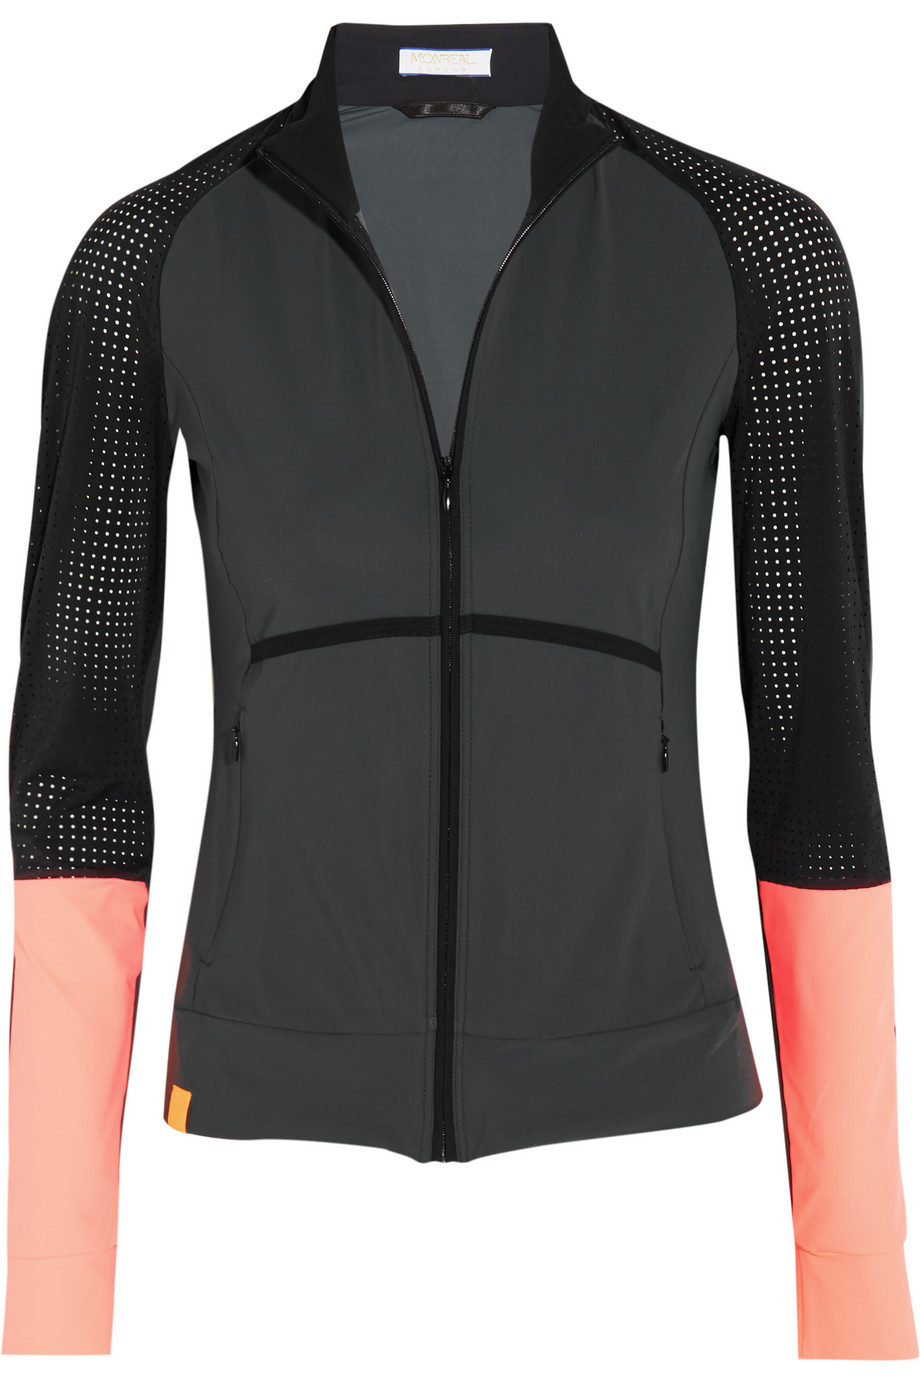 Monreal London Perforated Stretch-Jersey Jacket, Charcoal, Women's